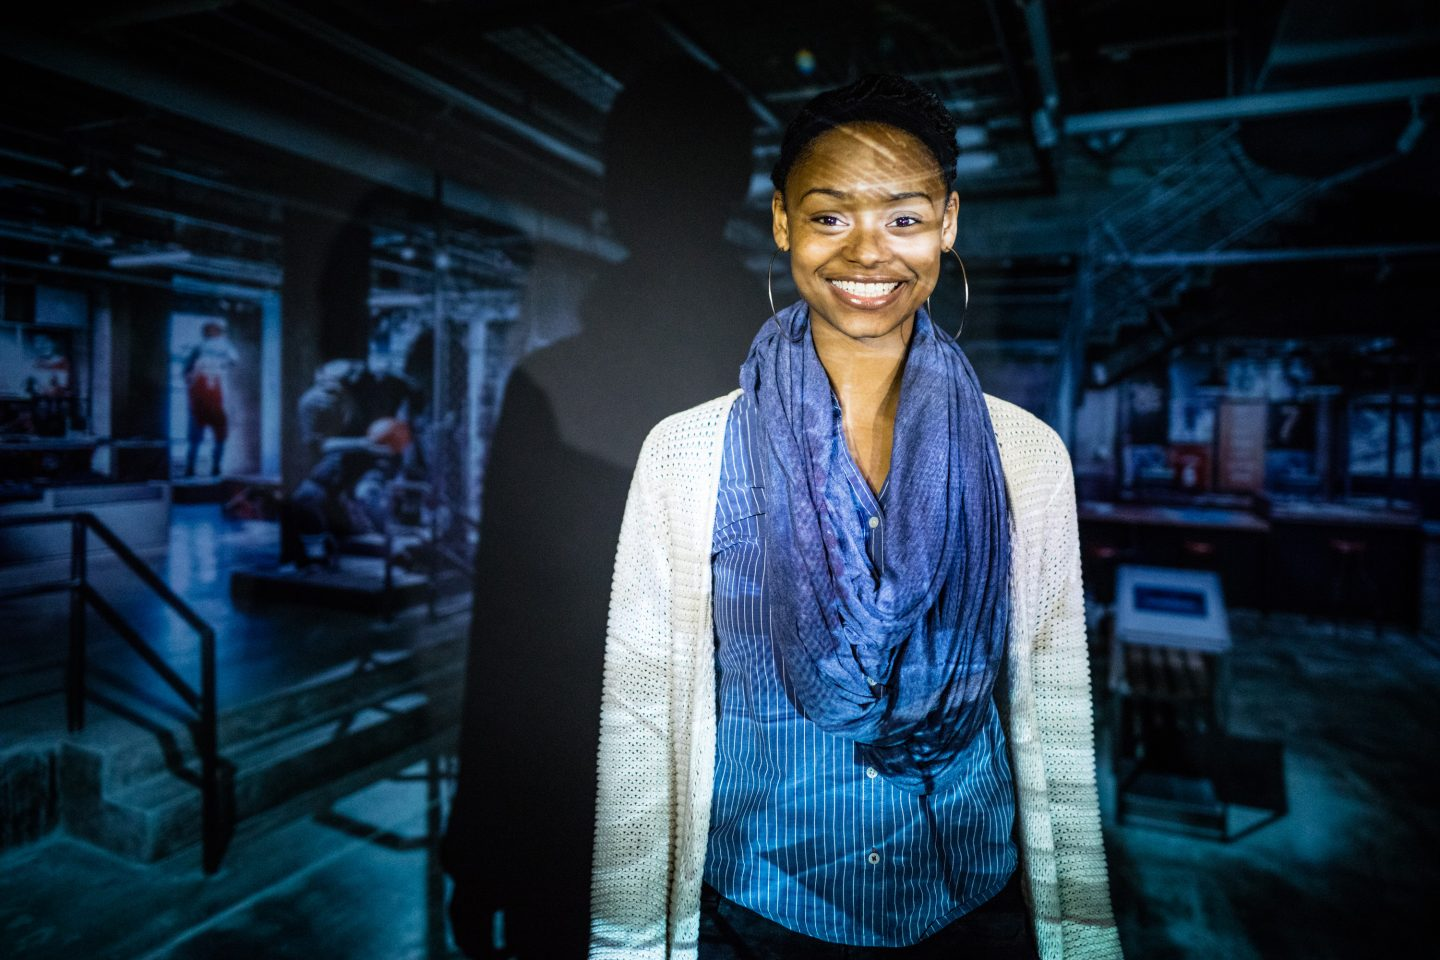 woman smiling with projection behind her